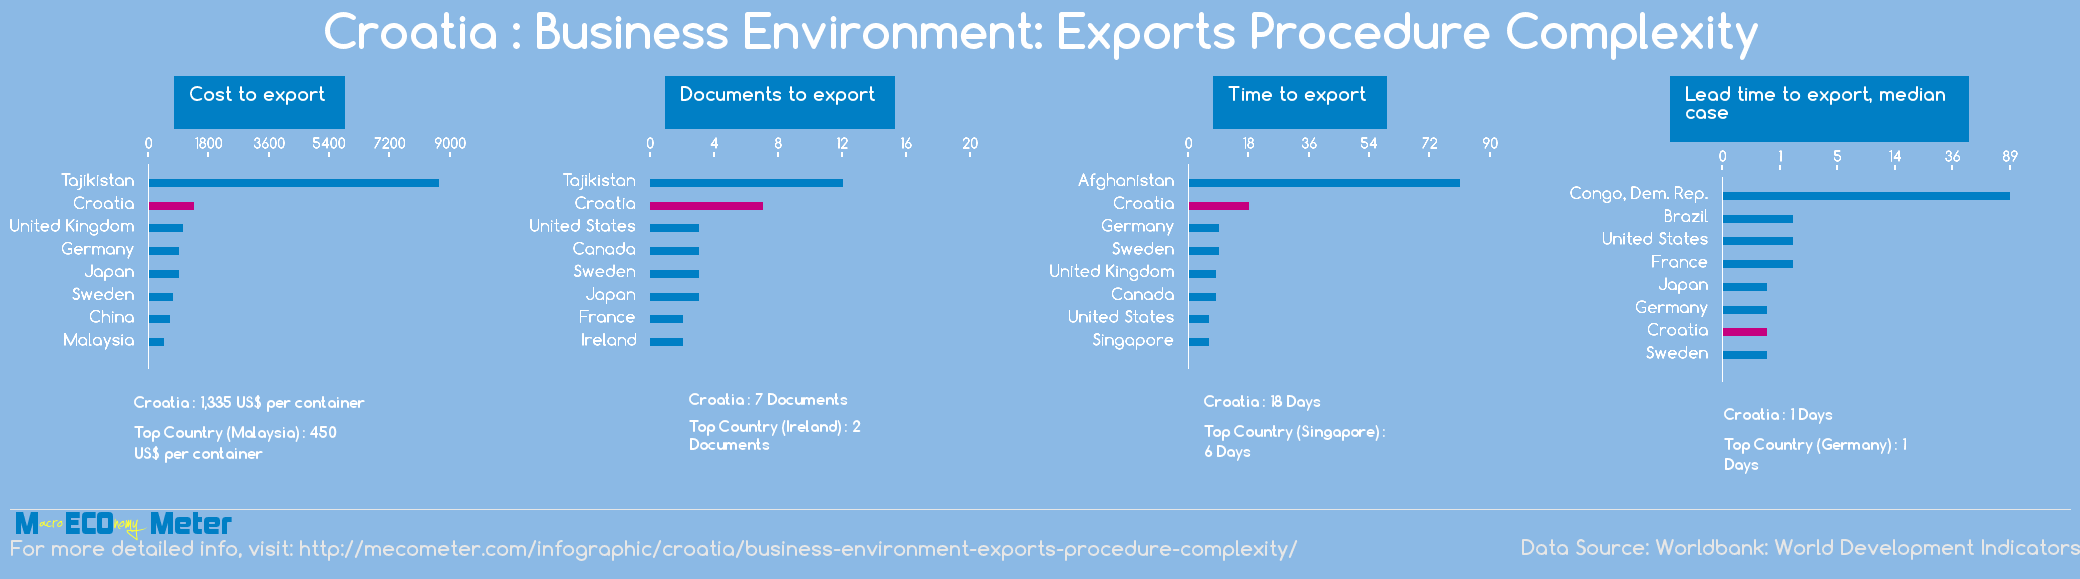 Croatia : Business Environment: Exports Procedure Complexity